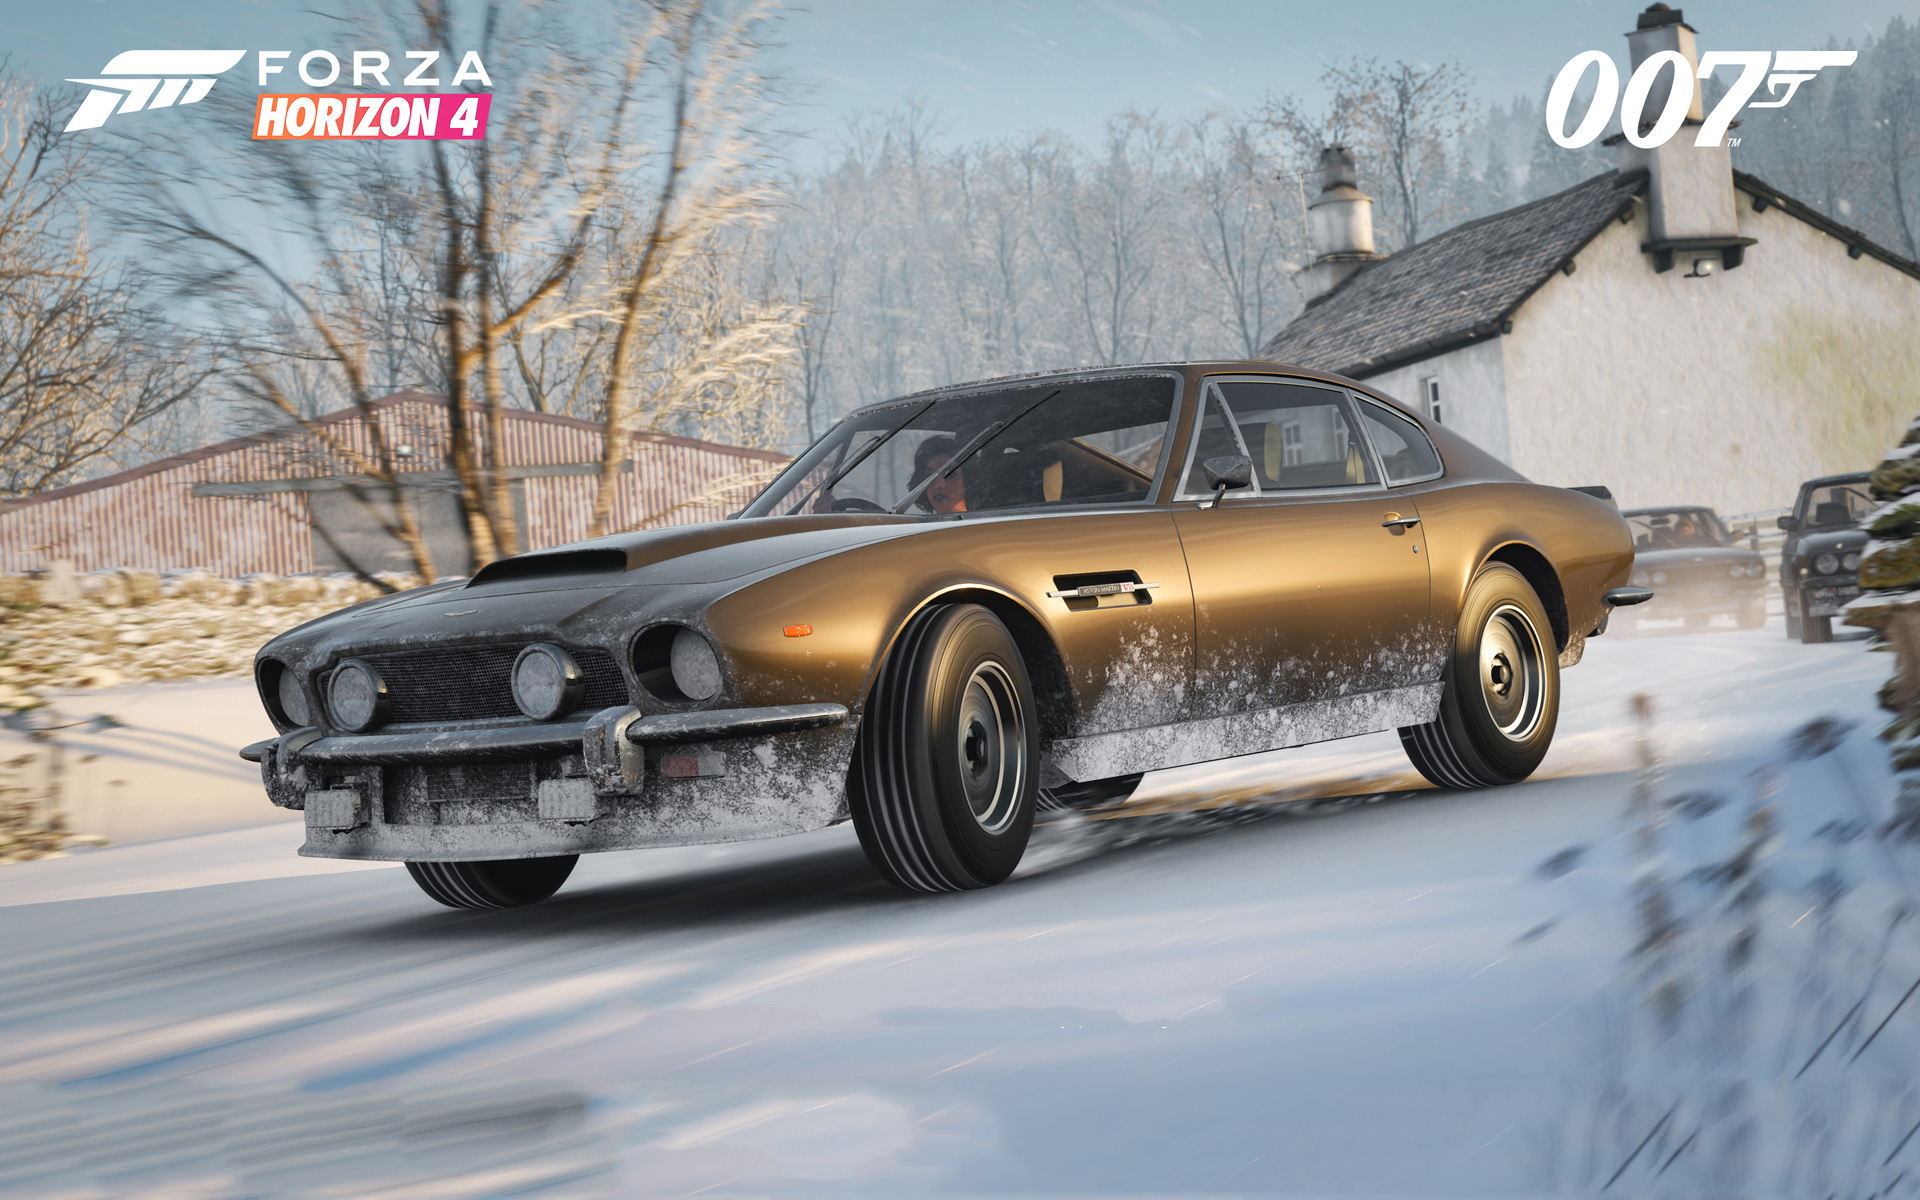 Free Forza Horizon 4 Wallpaper in 1920x1200